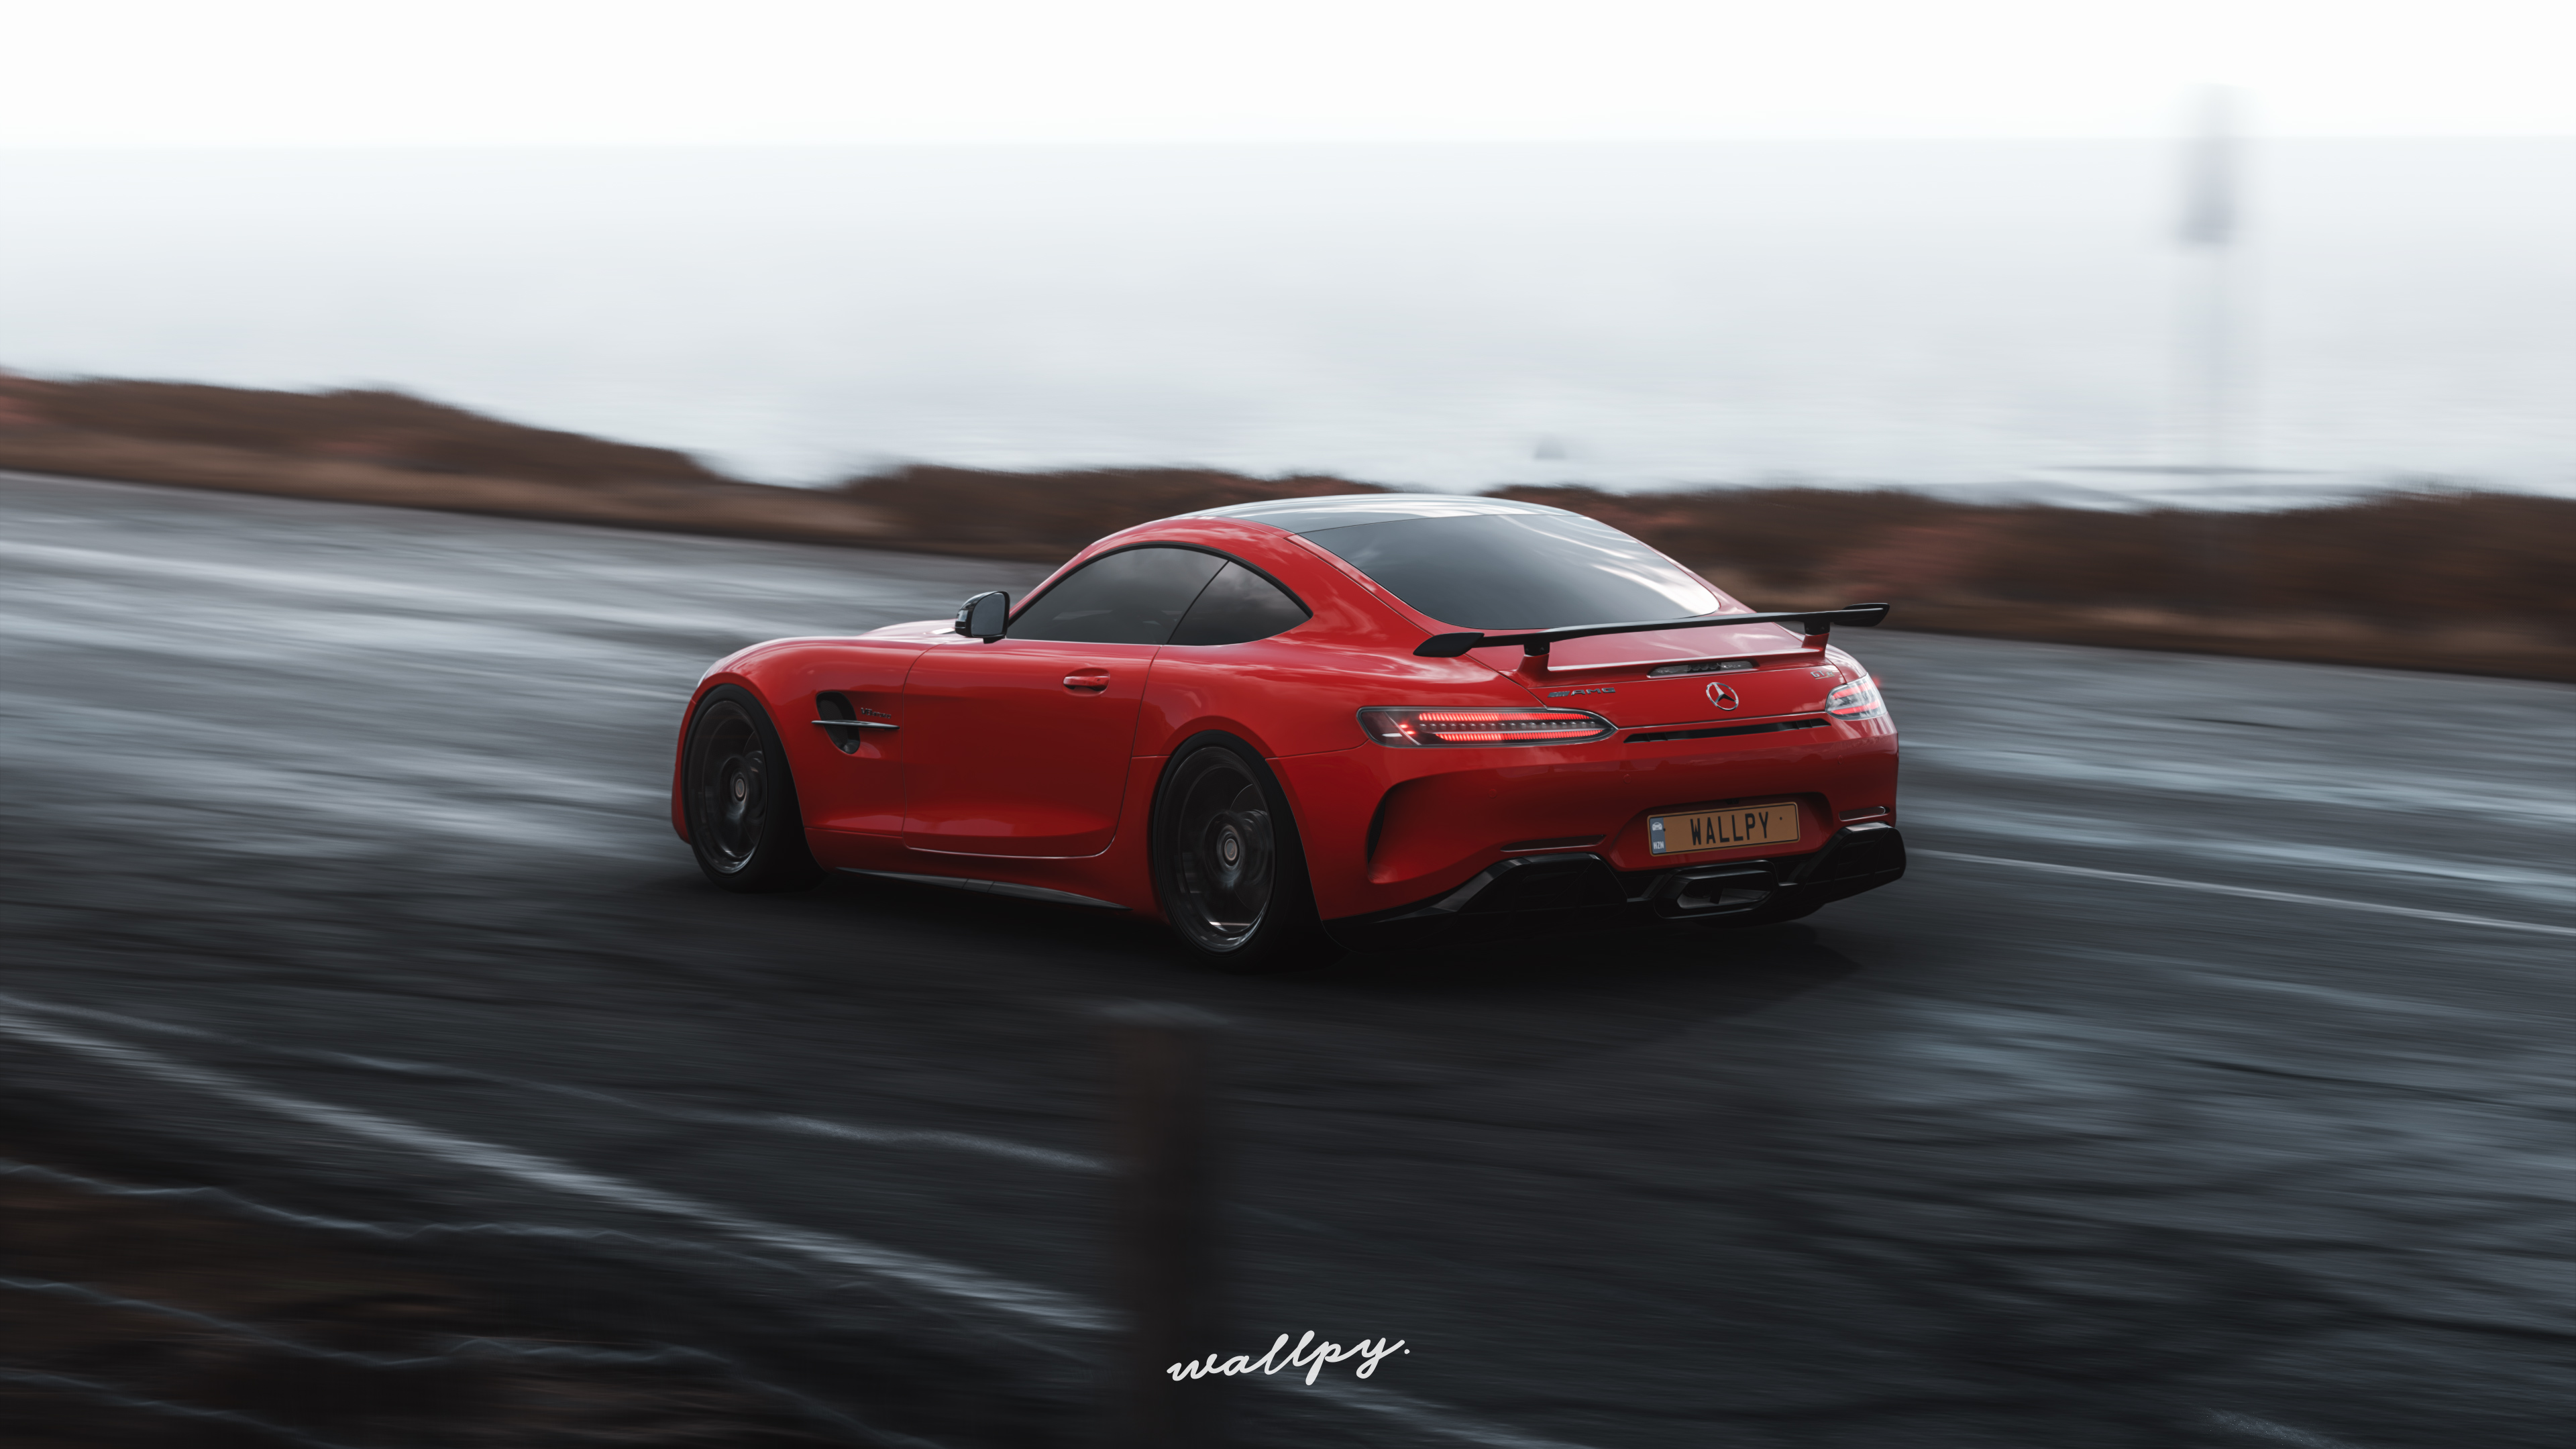 forza horizon 4 mercedes amg gtr 4k 1547319336 - Forza Horizon 4 Mercedes Amg Gtr 4k - mercedes wallpapers, mercedes amg wallpapers, hd-wallpapers, forza wallpapers, forza horizon 4 wallpapers, cars wallpapers, 4k-wallpapers, 2018 games wallpapers